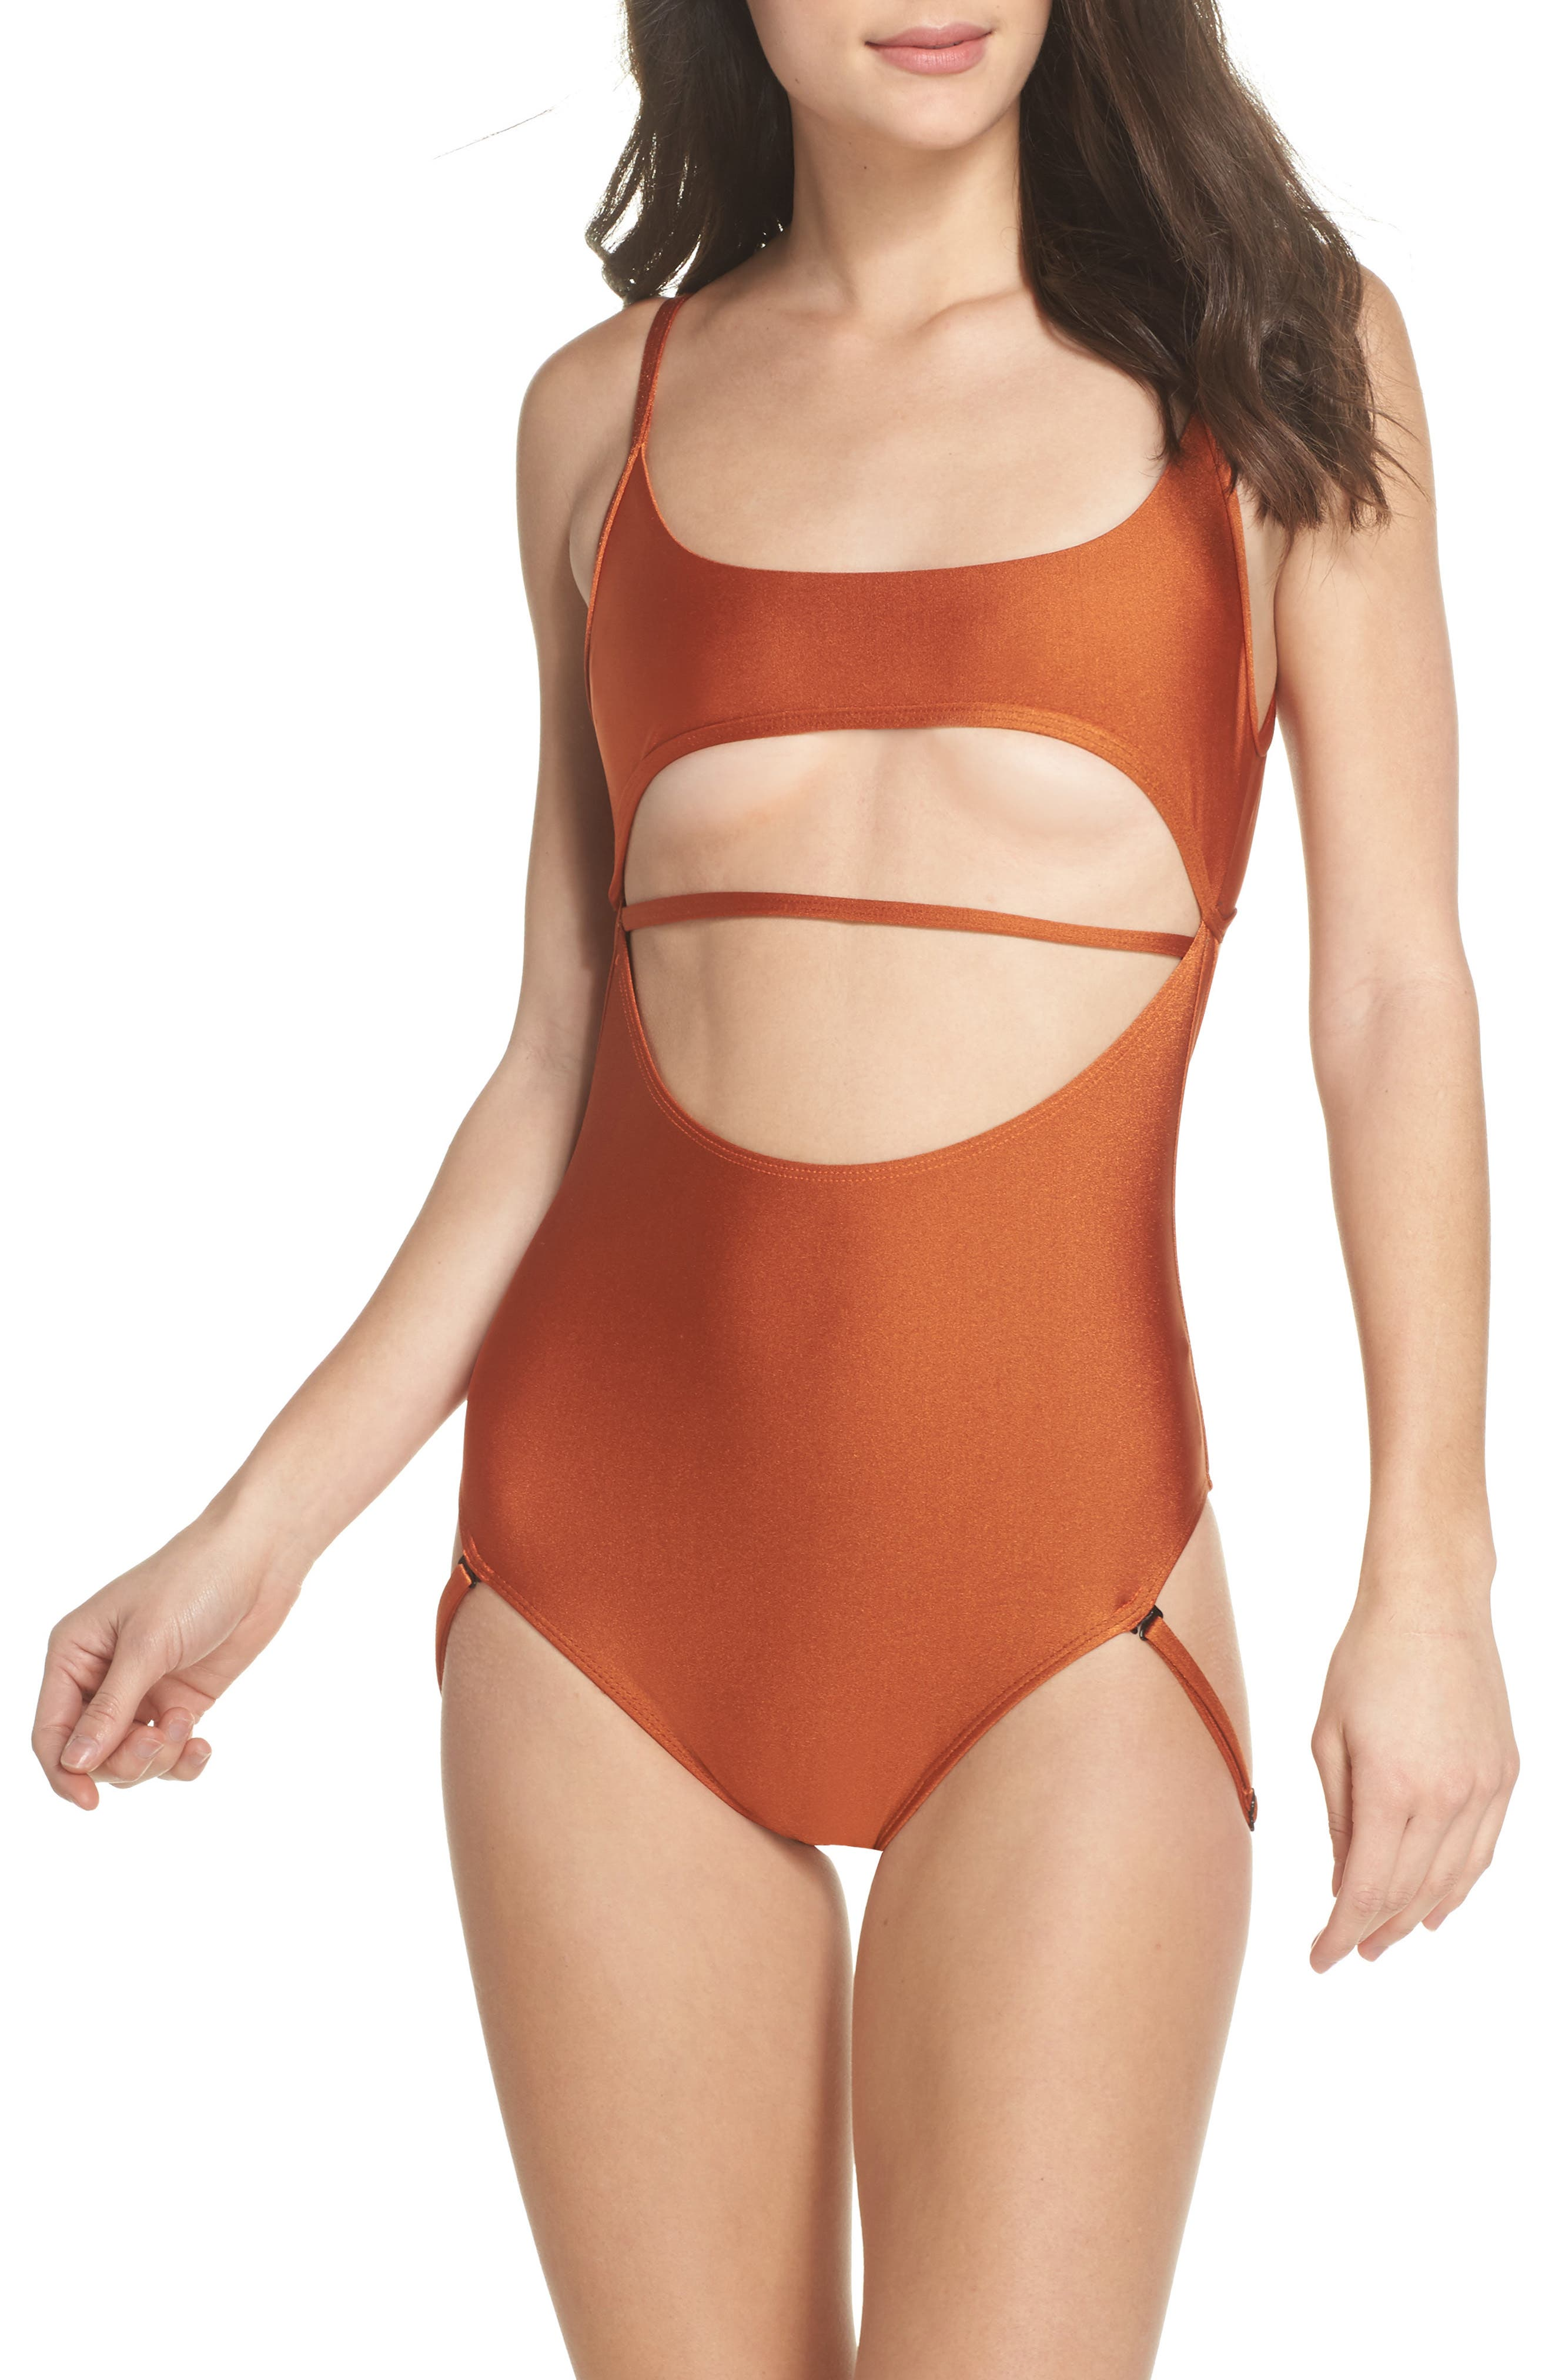 Strata One-Piece Swimsuit,                             Main thumbnail 1, color,                             Ginger Orange